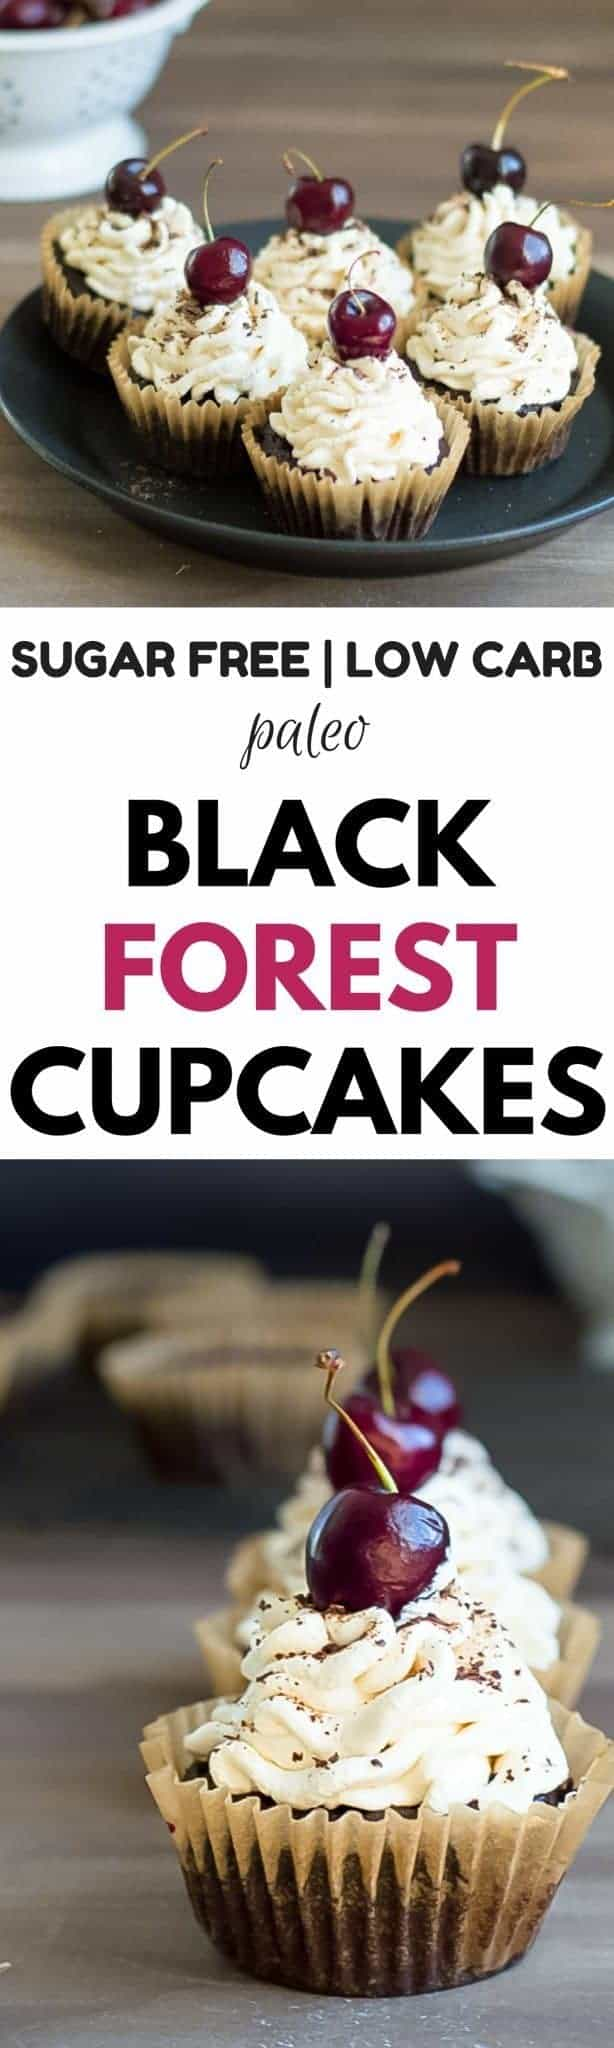 Black Forest Cupcakes that are homemade and stuffed with a cherry filling. Healthy, easy, gluten free, dairy free black forest cupcakes. Best black forest cupcakes recipe. Gluten free, stuffed black forest cupcakes. Paleo black forest cupcakes!